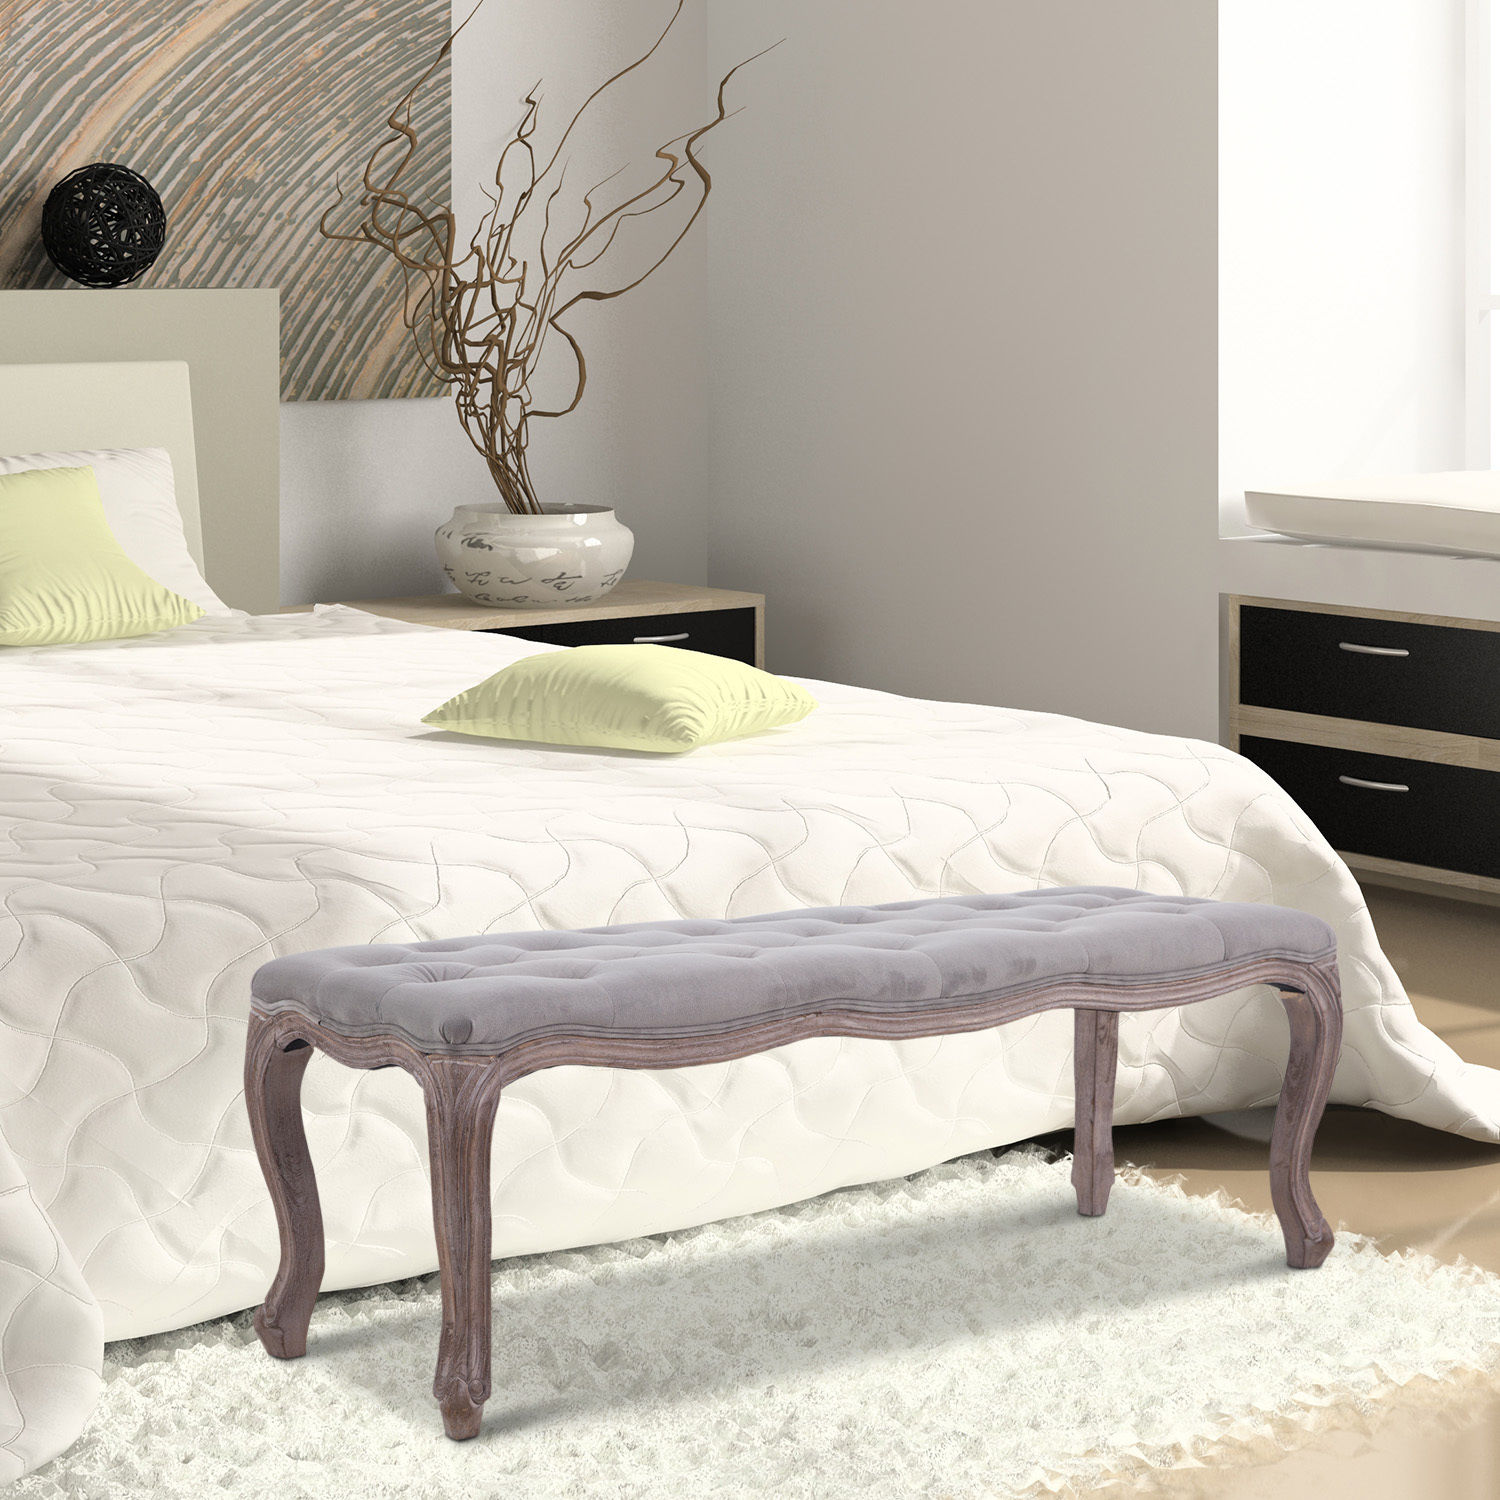 Upholstered Bench Tufted End Of Bed Seat Ottoman Wood